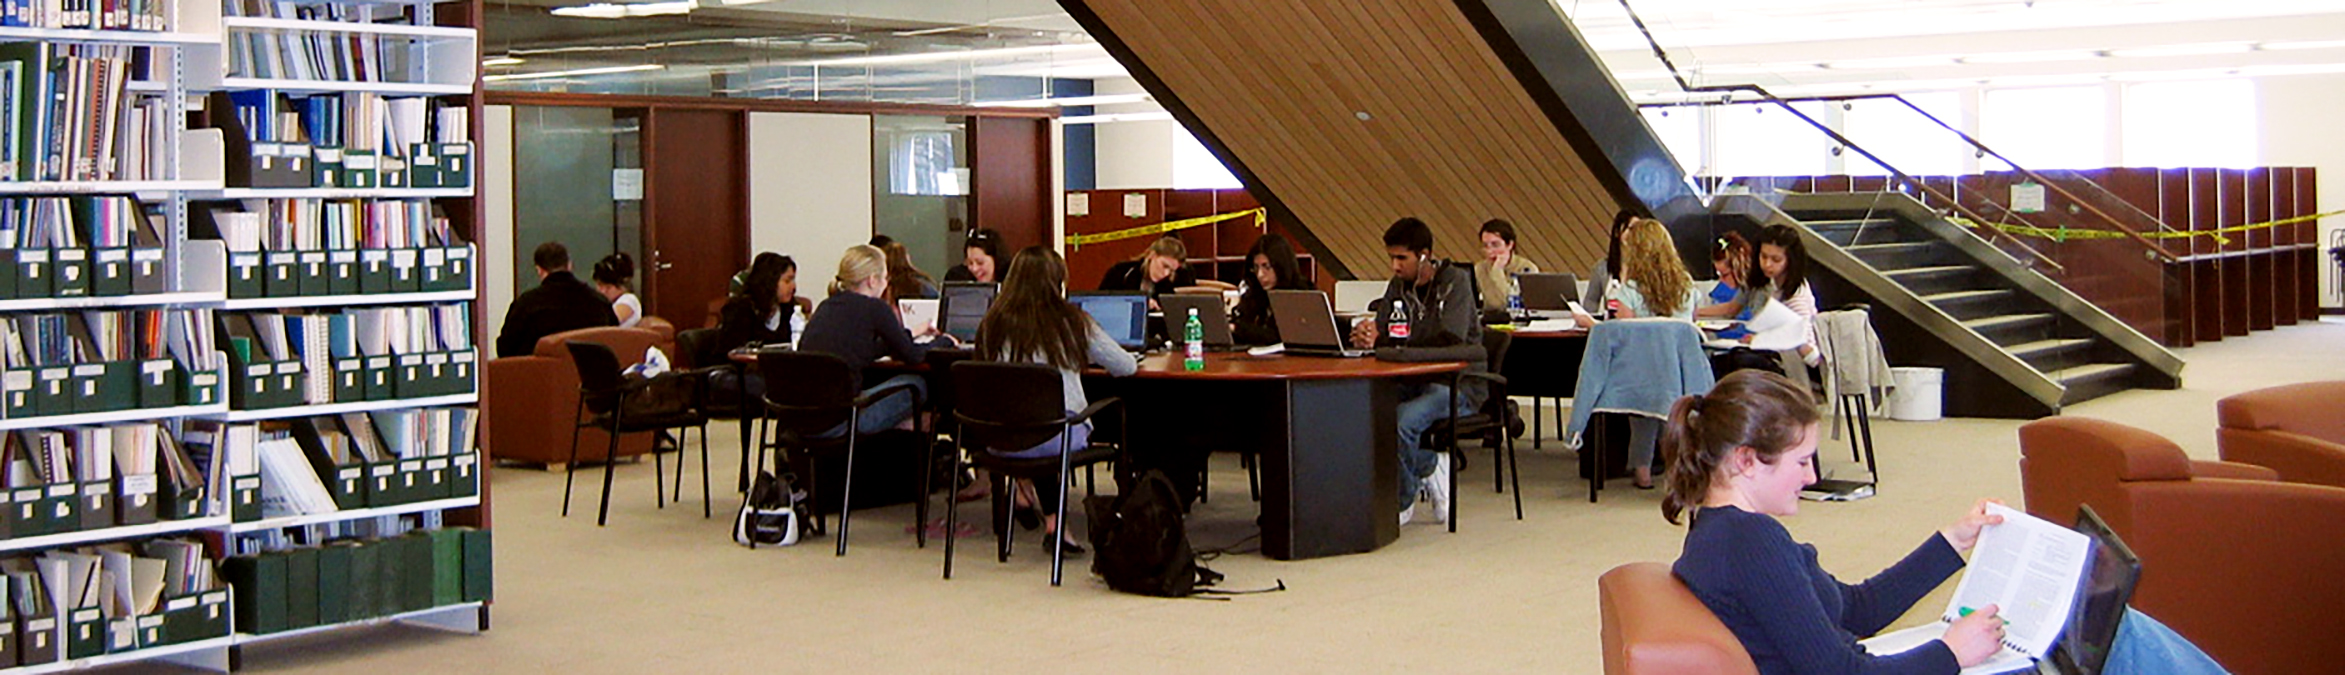 Students studying and working under the stairs of the Health Sciences Library